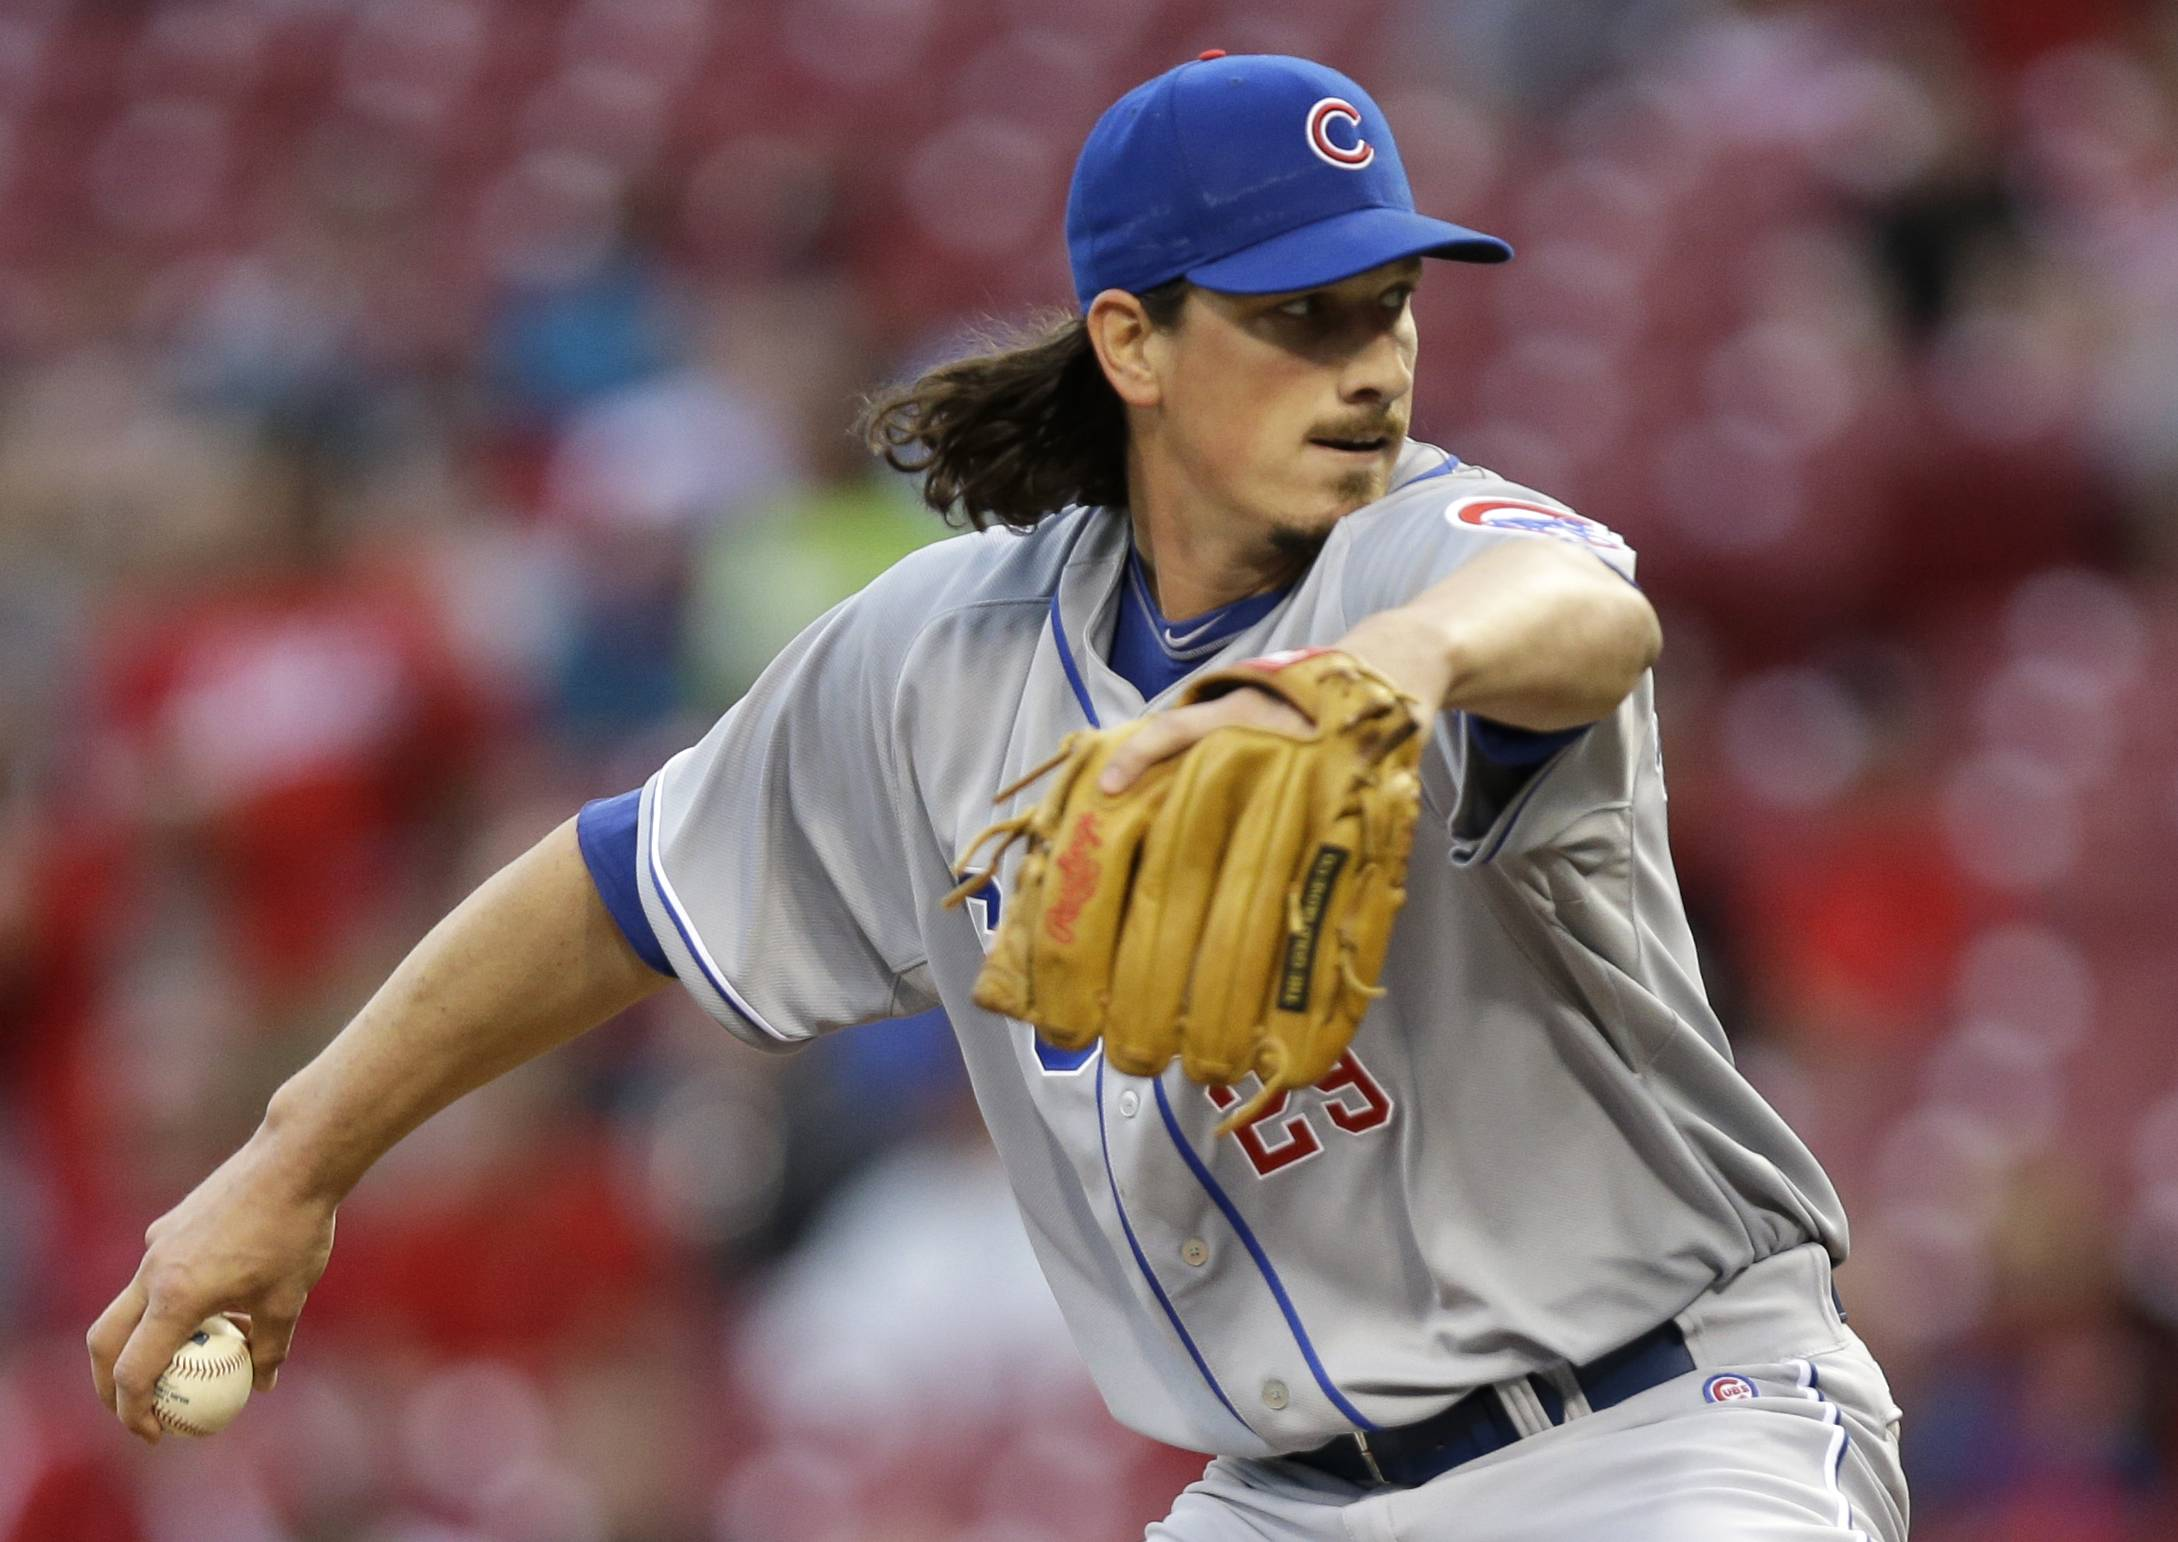 Chicago Cubs starting pitcher Jeff Samardzija throws to a Cincinnati Reds batter in the first inning of a baseball game, Tuesday, April 29, 2014, in Cincinnati.